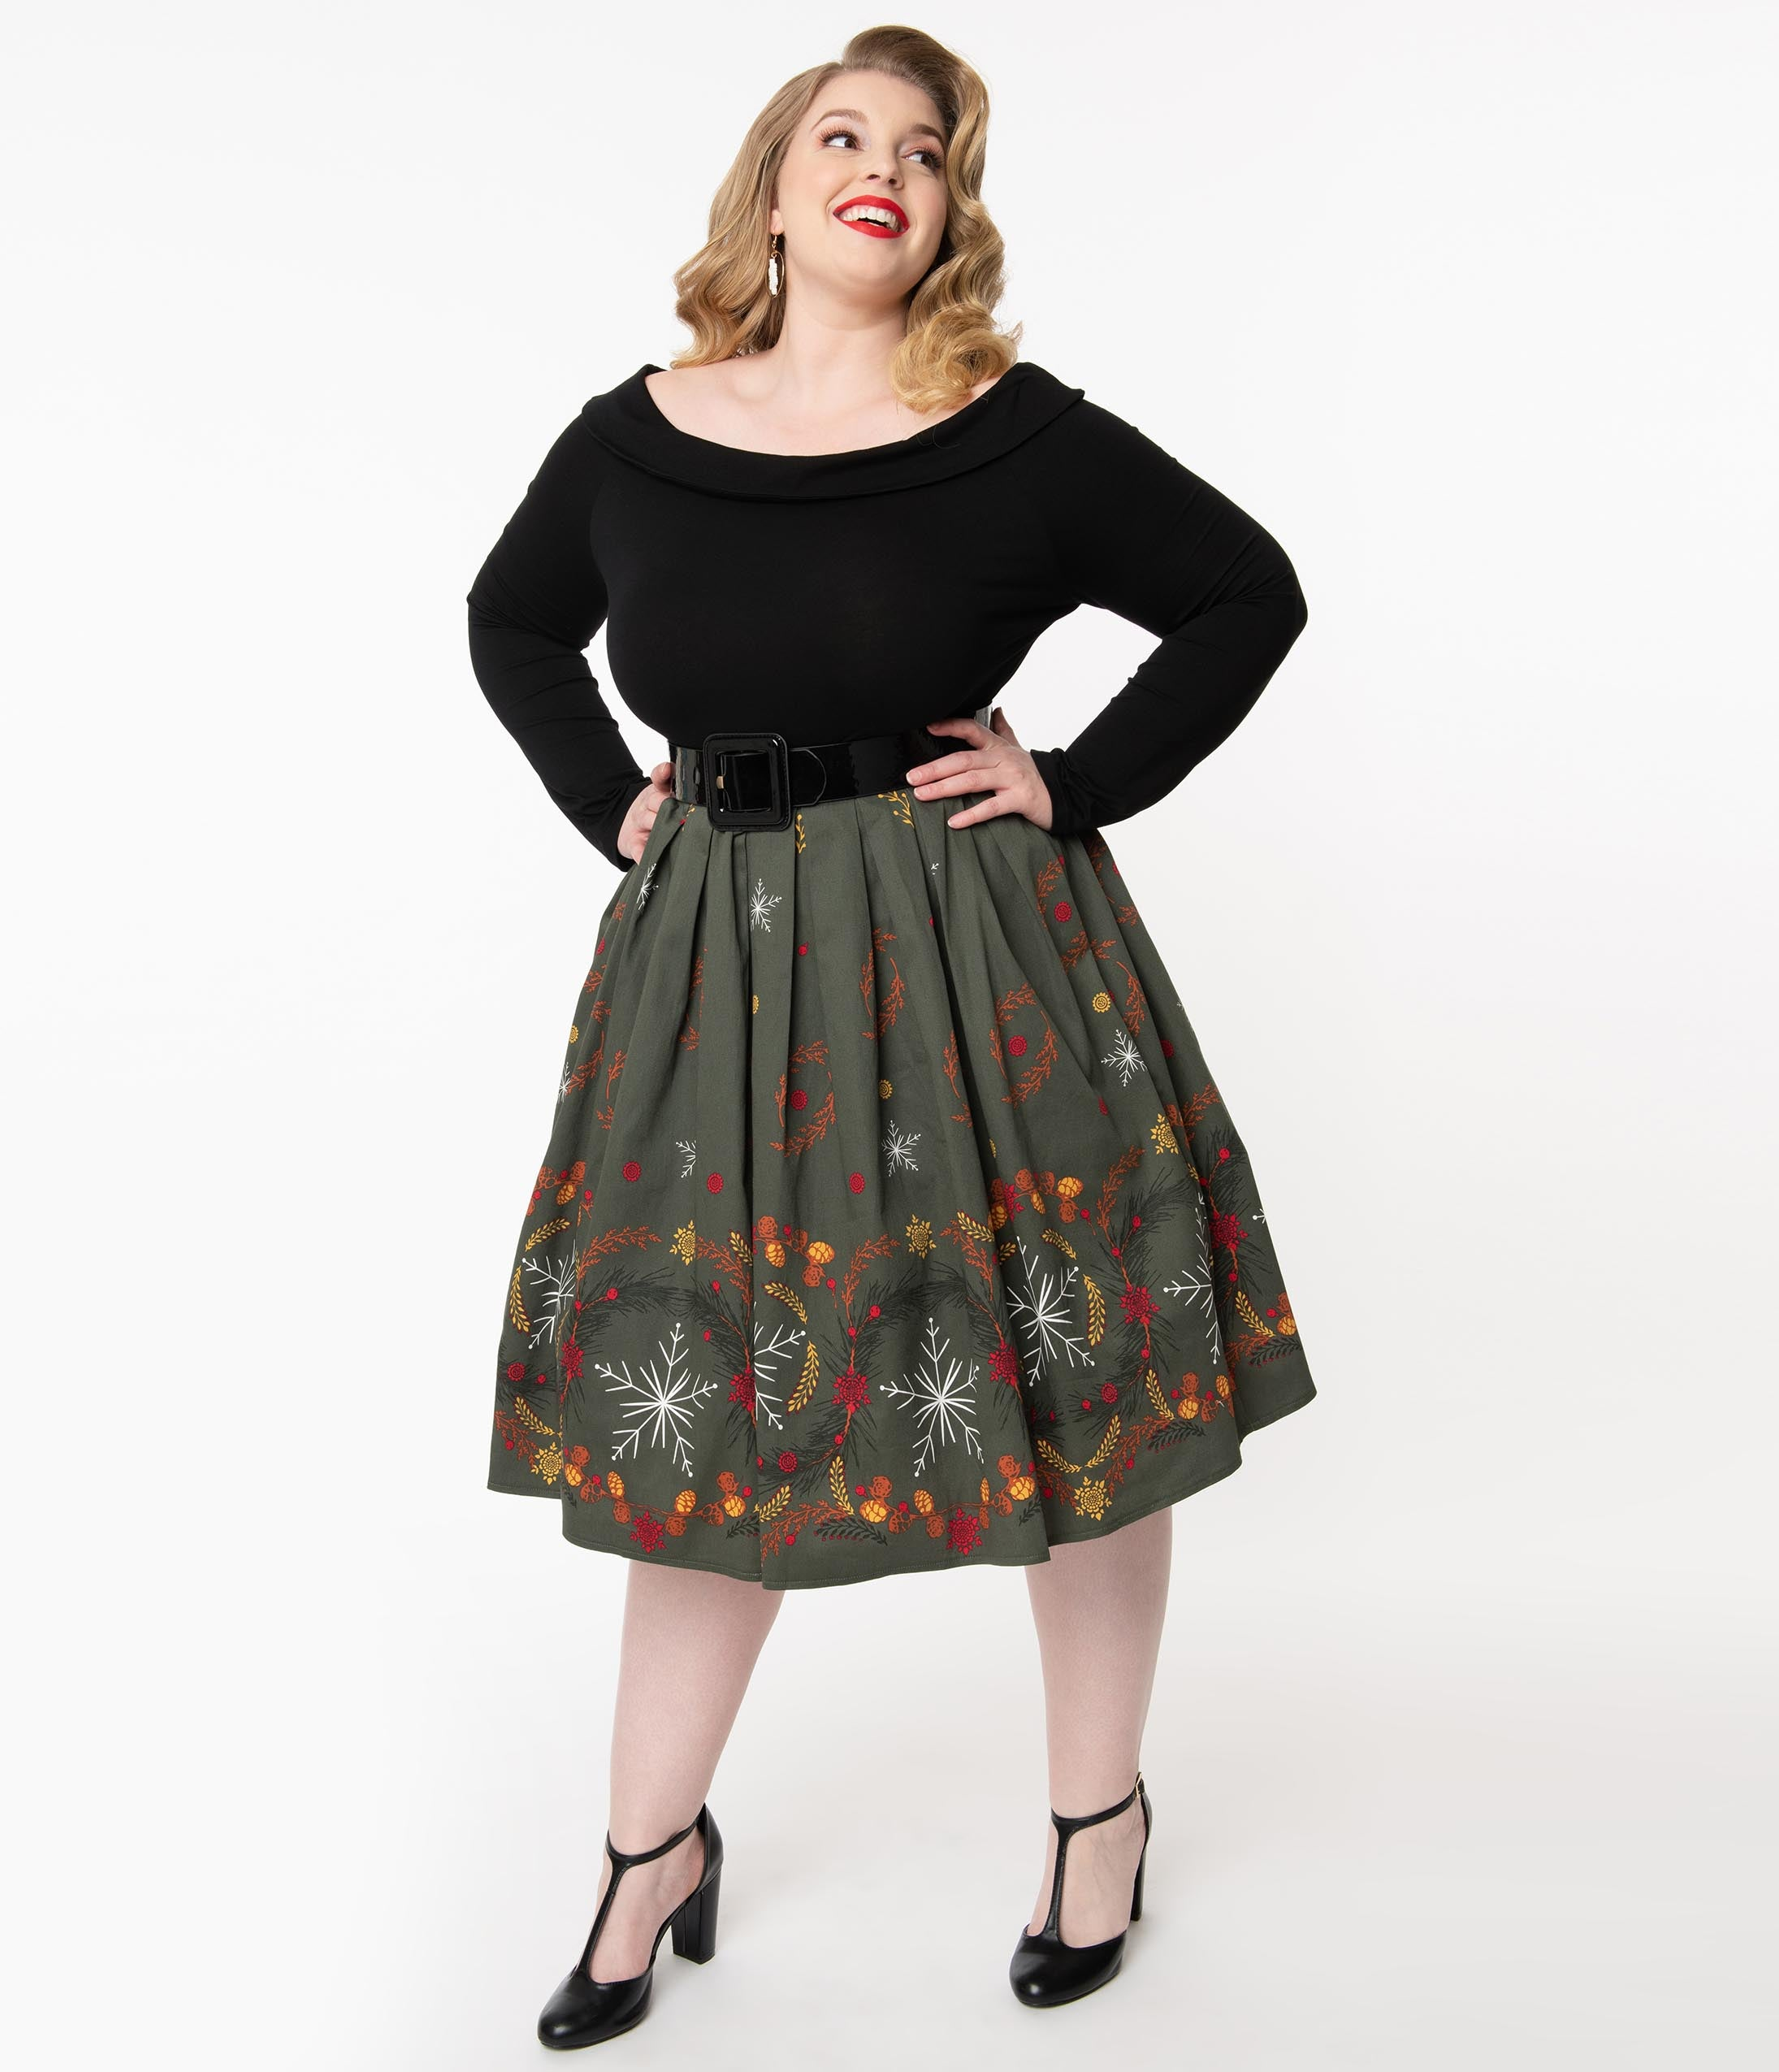 1950s Swing Skirt, Poodle Skirt, Pencil Skirts Plus Size 1950S Olive  Winter Leaves Print Pleated Swing Skirt $58.00 AT vintagedancer.com